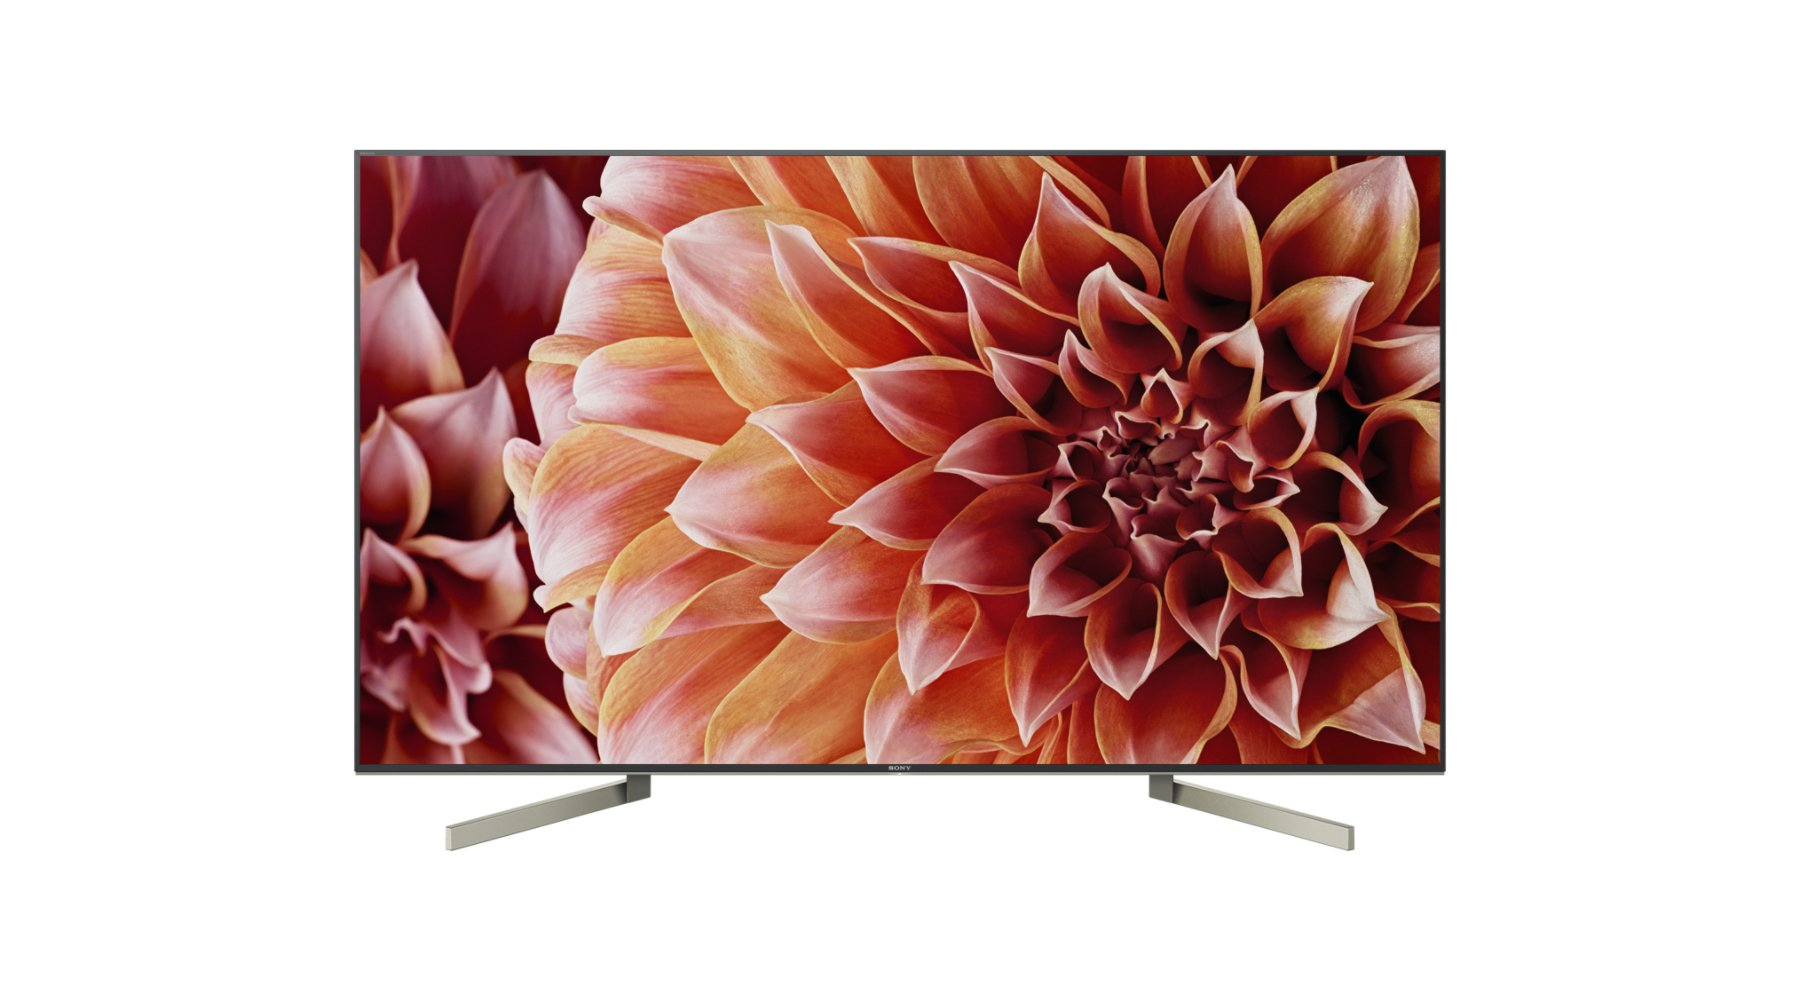 SONY (Premium SDS) Sony KD 49 XF 9005-123 cm (49 Zoll) TV (4K Ultra HD, HDR, Smart TV, Android TV, WLAN, Twin Tuner)